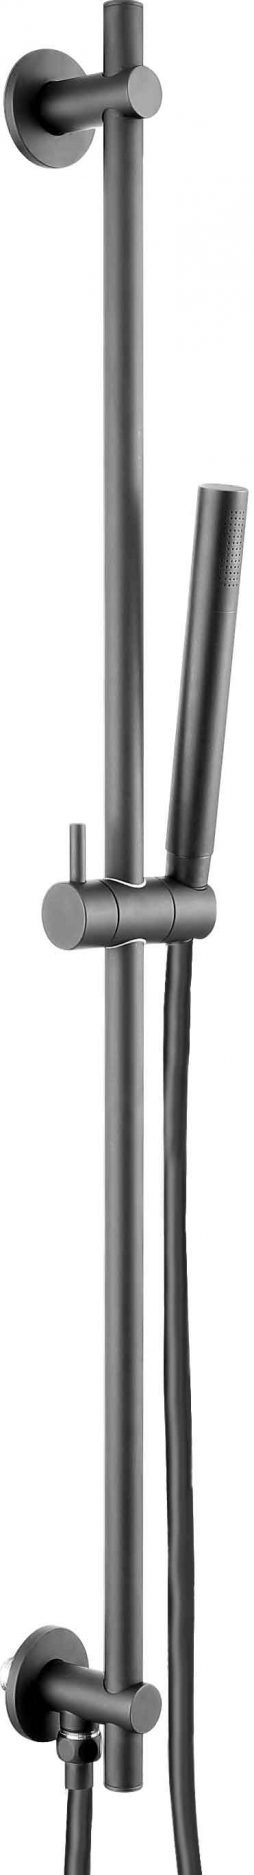 VOS slide rail with single function hand shower and hose, LP 0.2